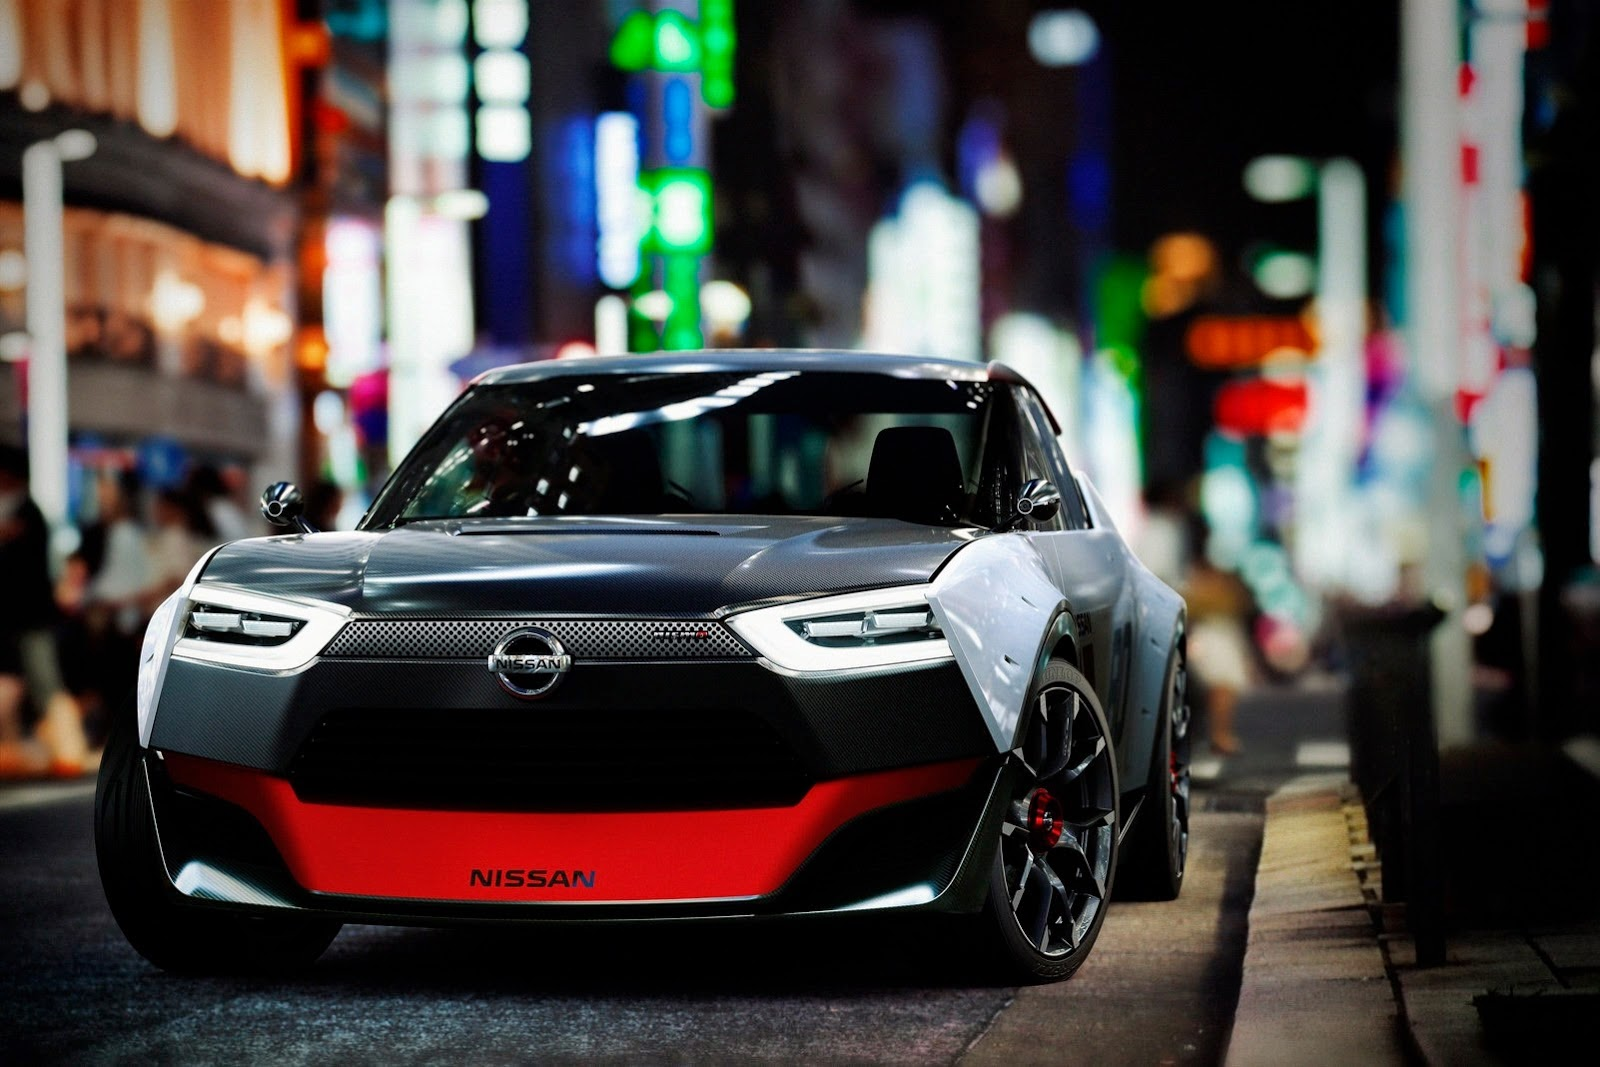 2017 nissan silvia based on idx rumored to rival scion fr s. Black Bedroom Furniture Sets. Home Design Ideas